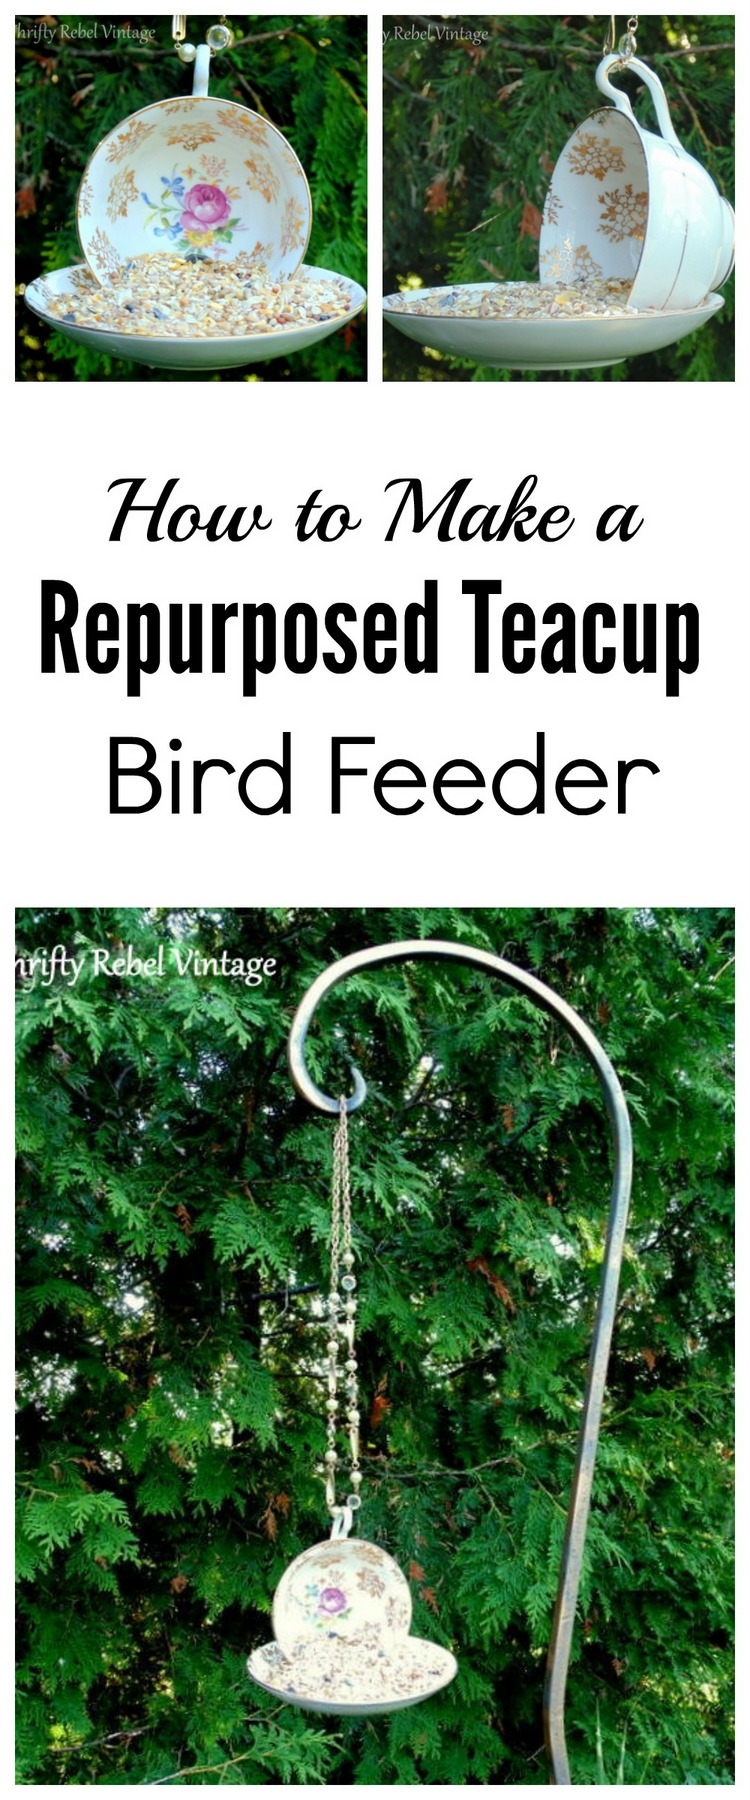 How to make a hanging teacup bird feeder thrifty rebel for How to build a bird feeder easy